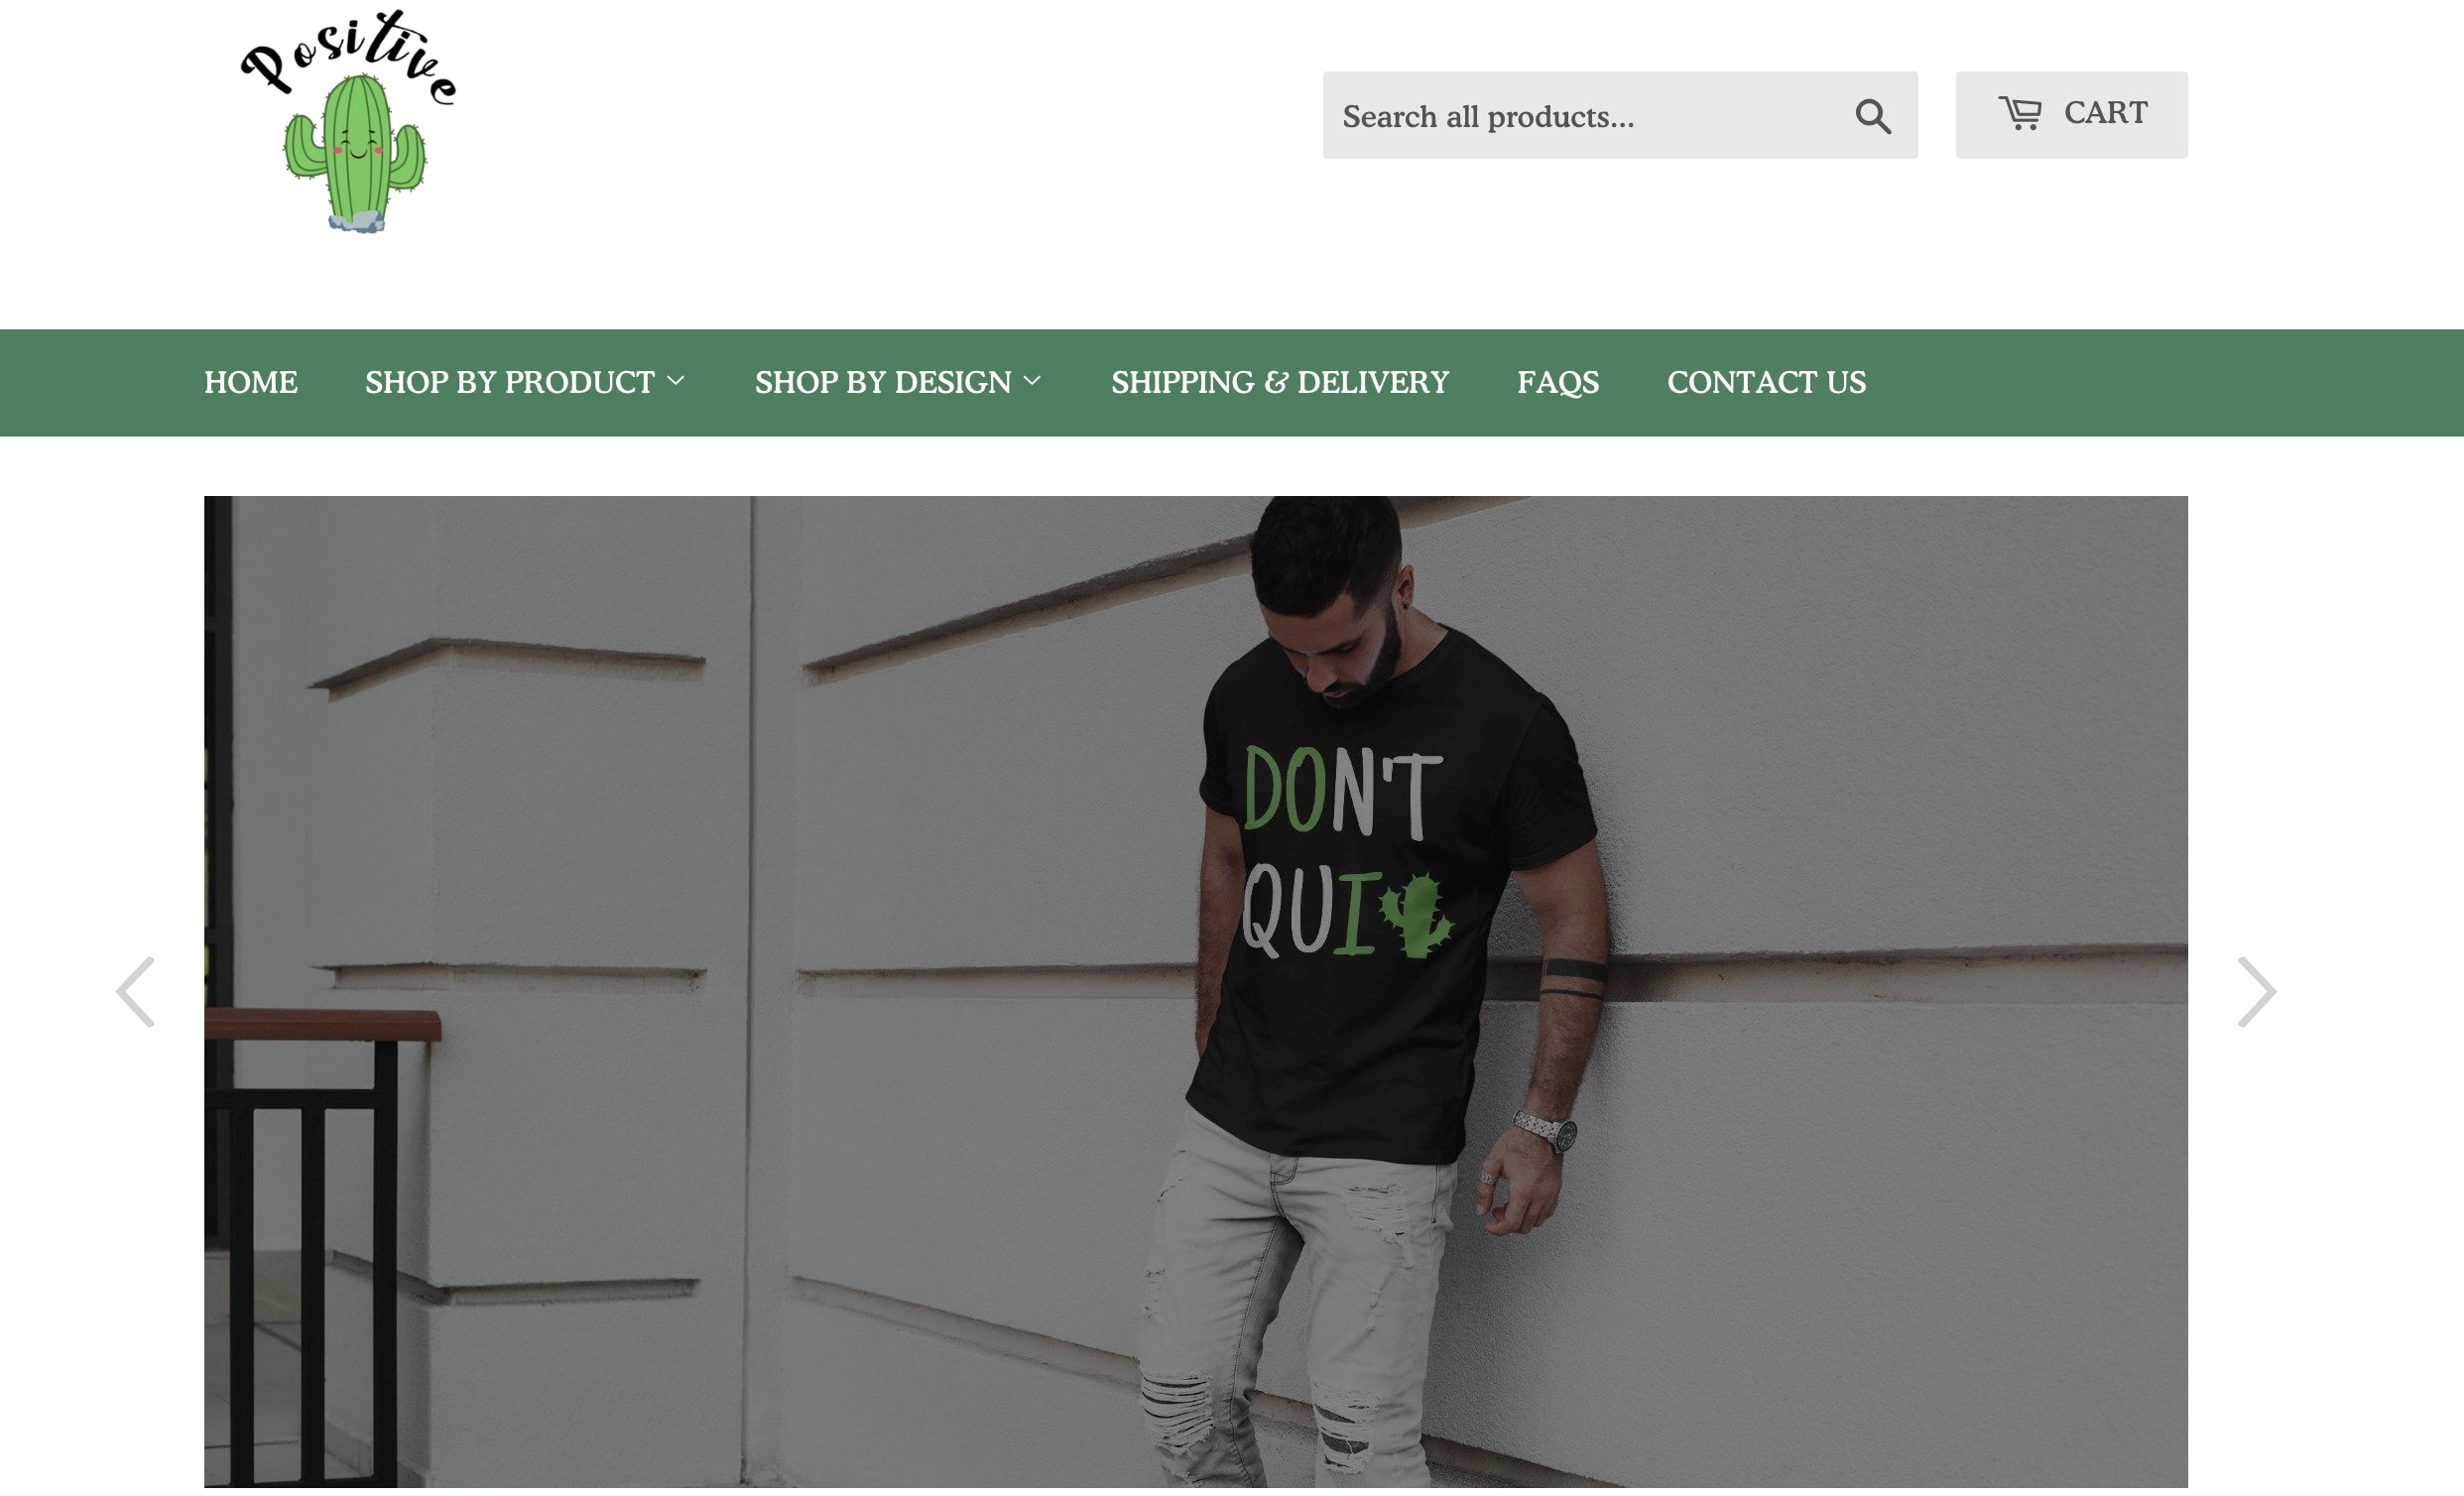 ThePositiveCactus Printing On Demand Shopify Store with Tremendous Growth Opportunity Screenshot - 5